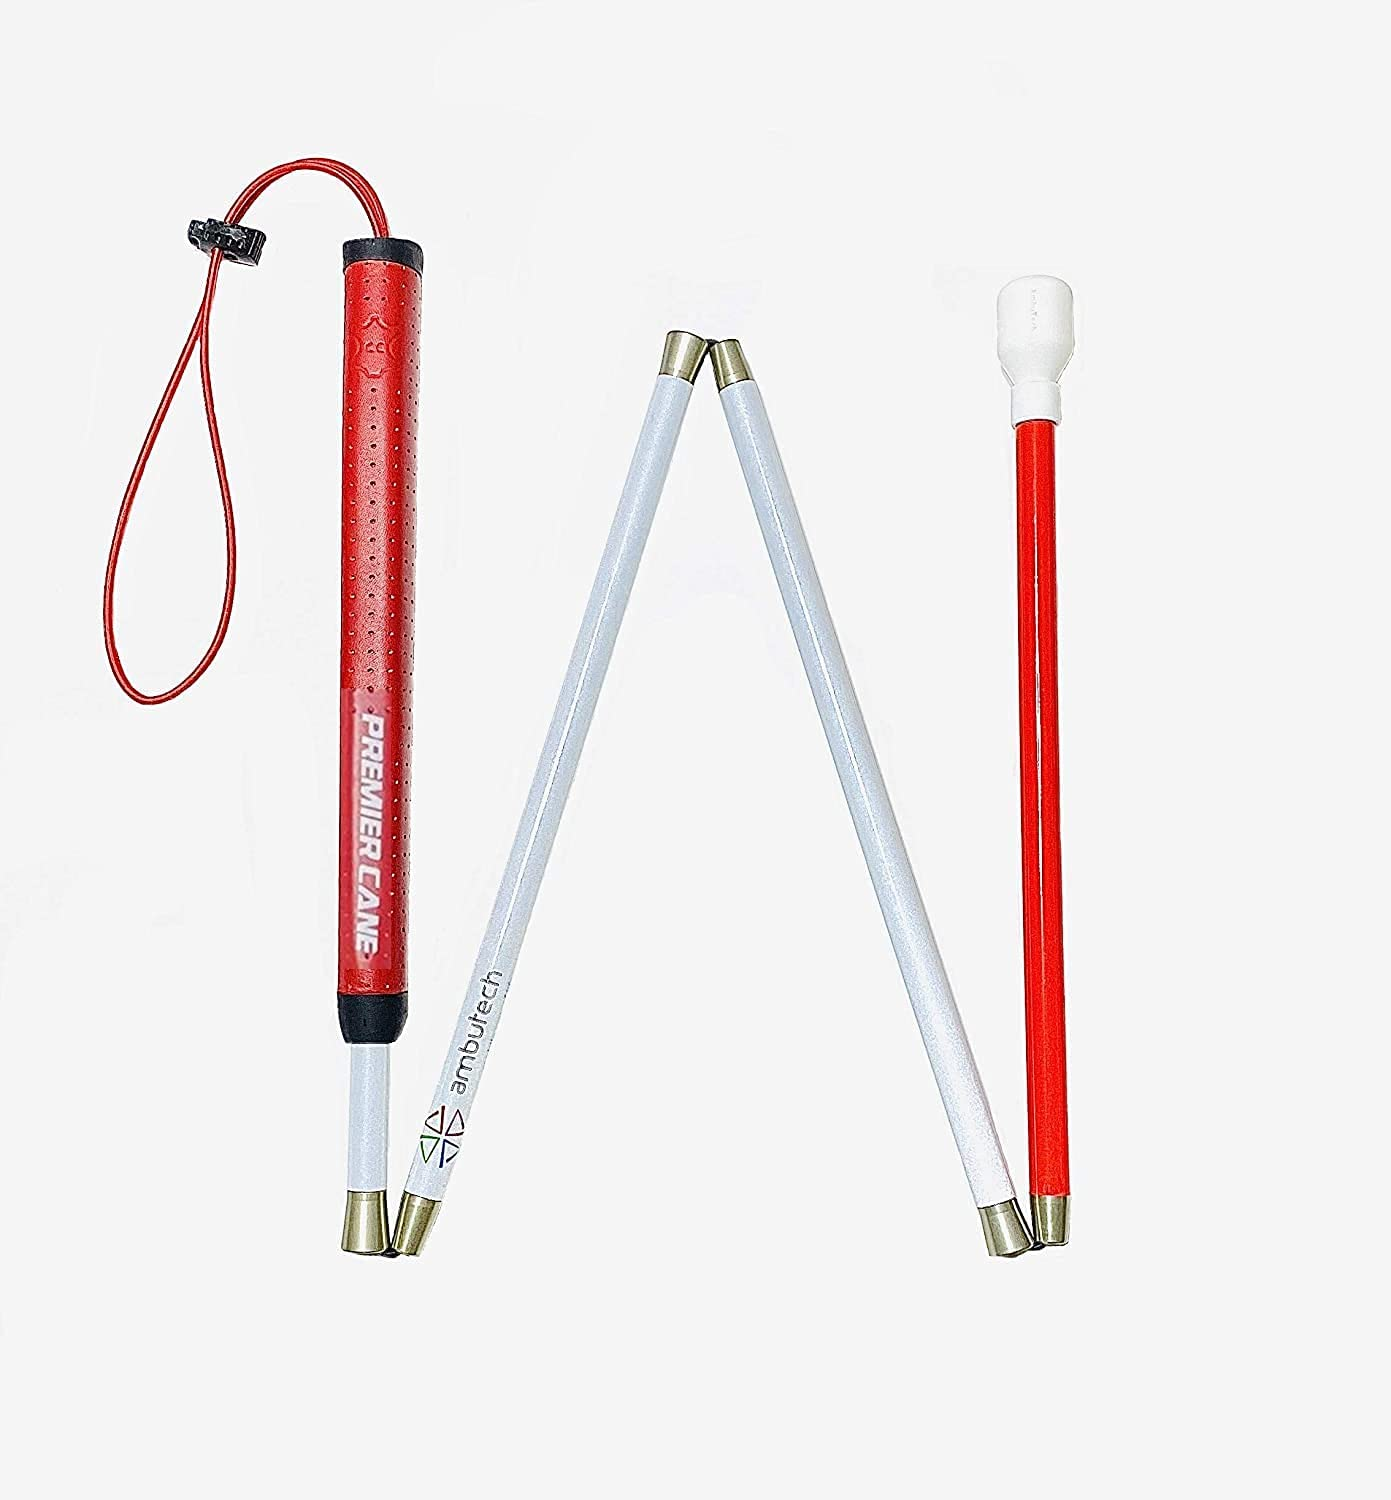 Ambutech Premier Aluminum Cane for The Blind or Visually Impaired (59-Inch)